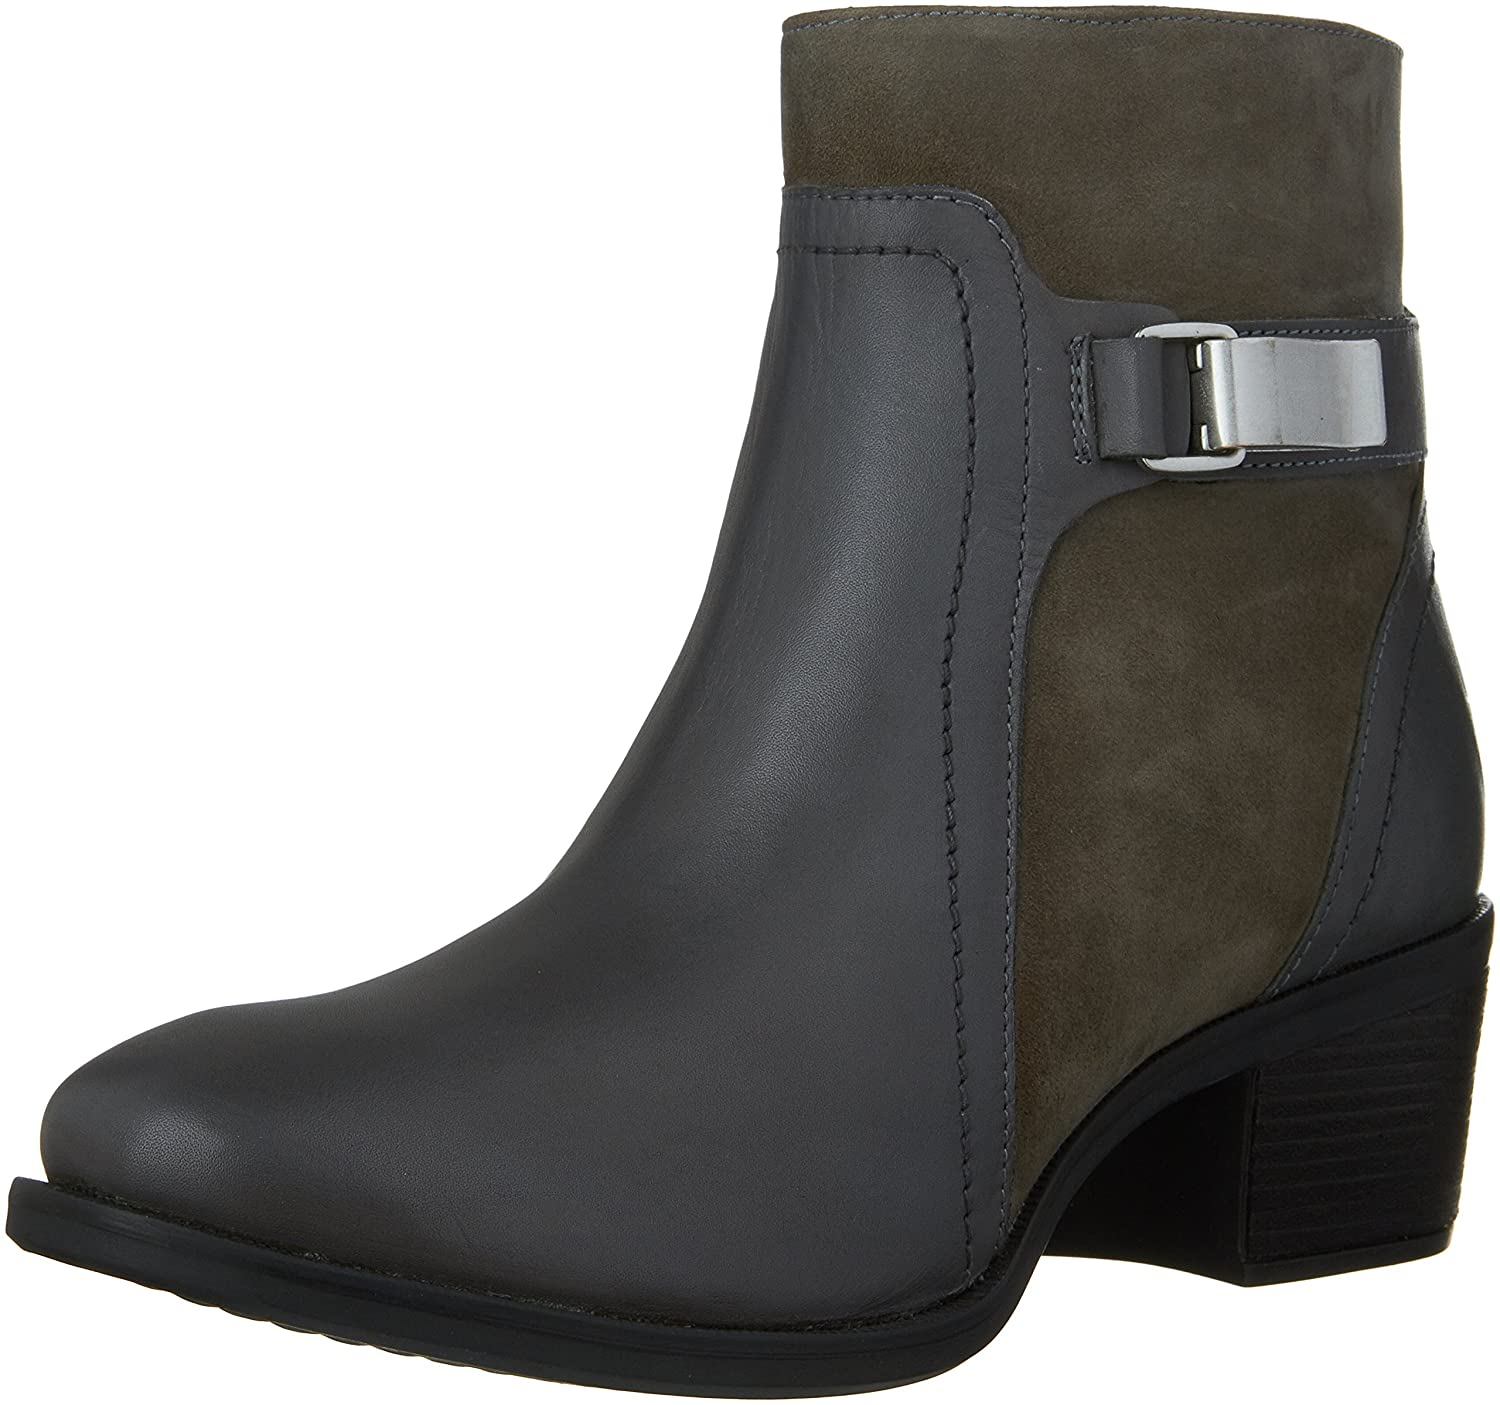 Hush Puppies Women's Fondly Nellie Western Boot B019X7V8O2 11 B(M) US|Smoke Leather/Suede